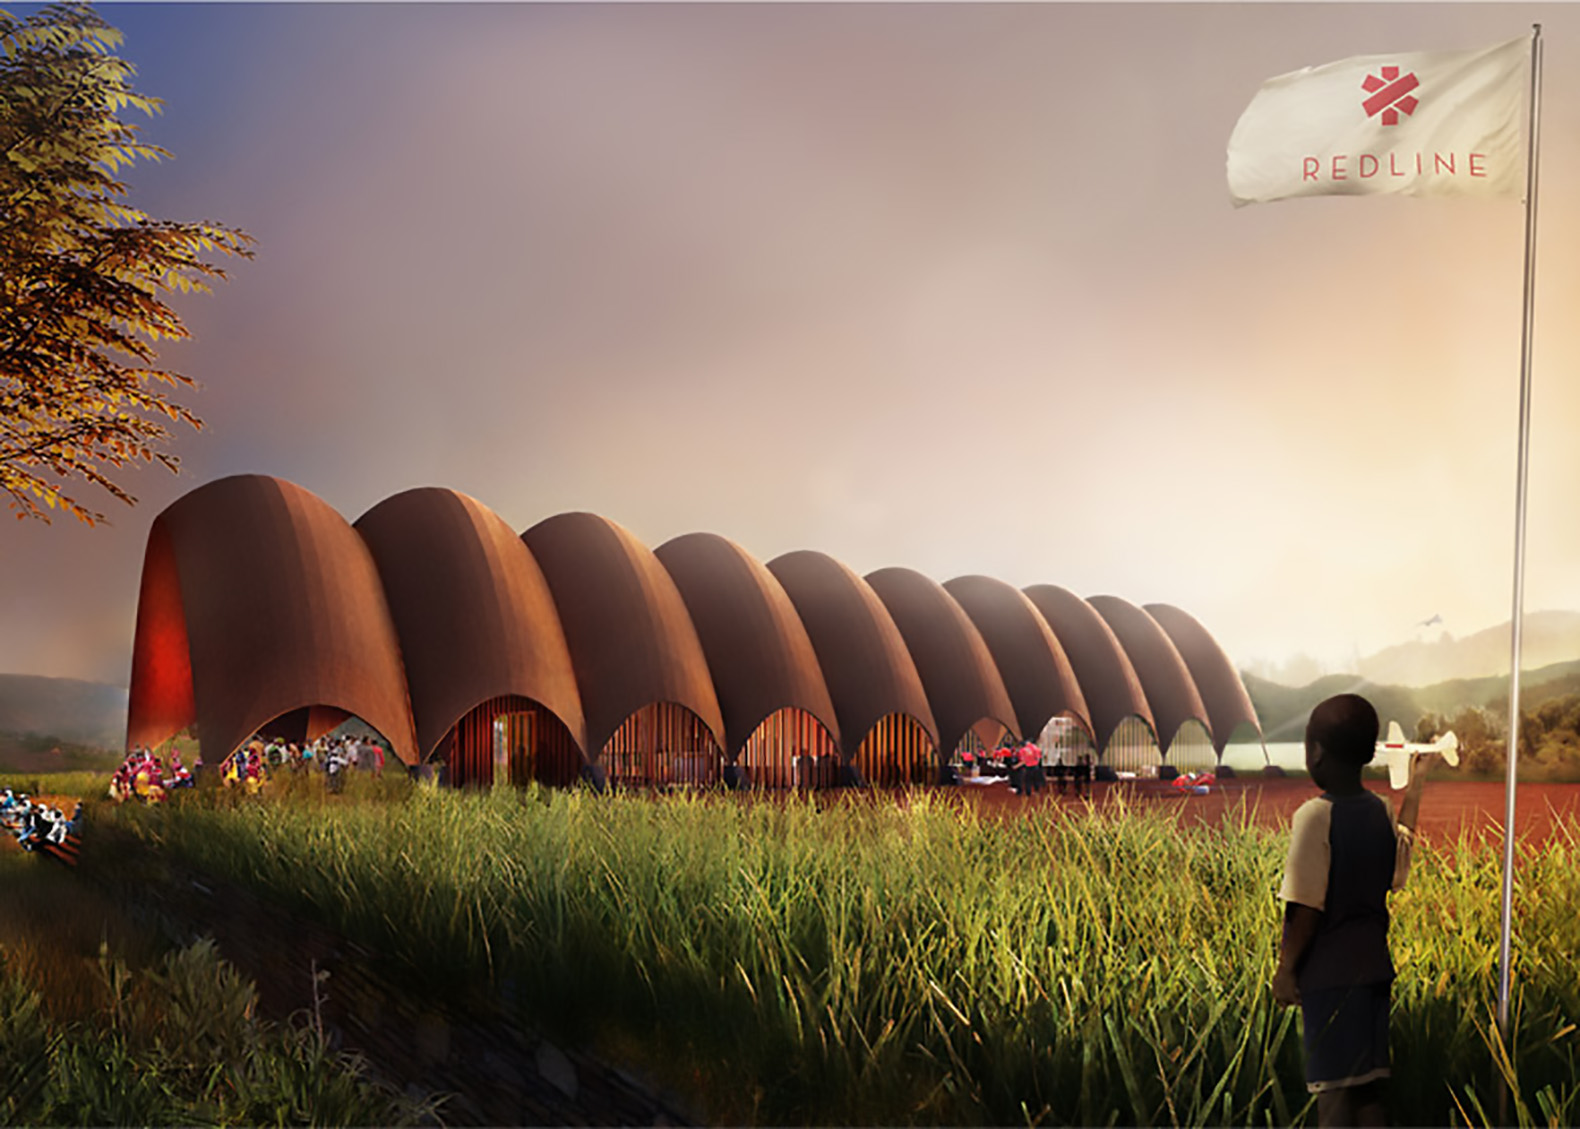 Droneport by Foster + Partners